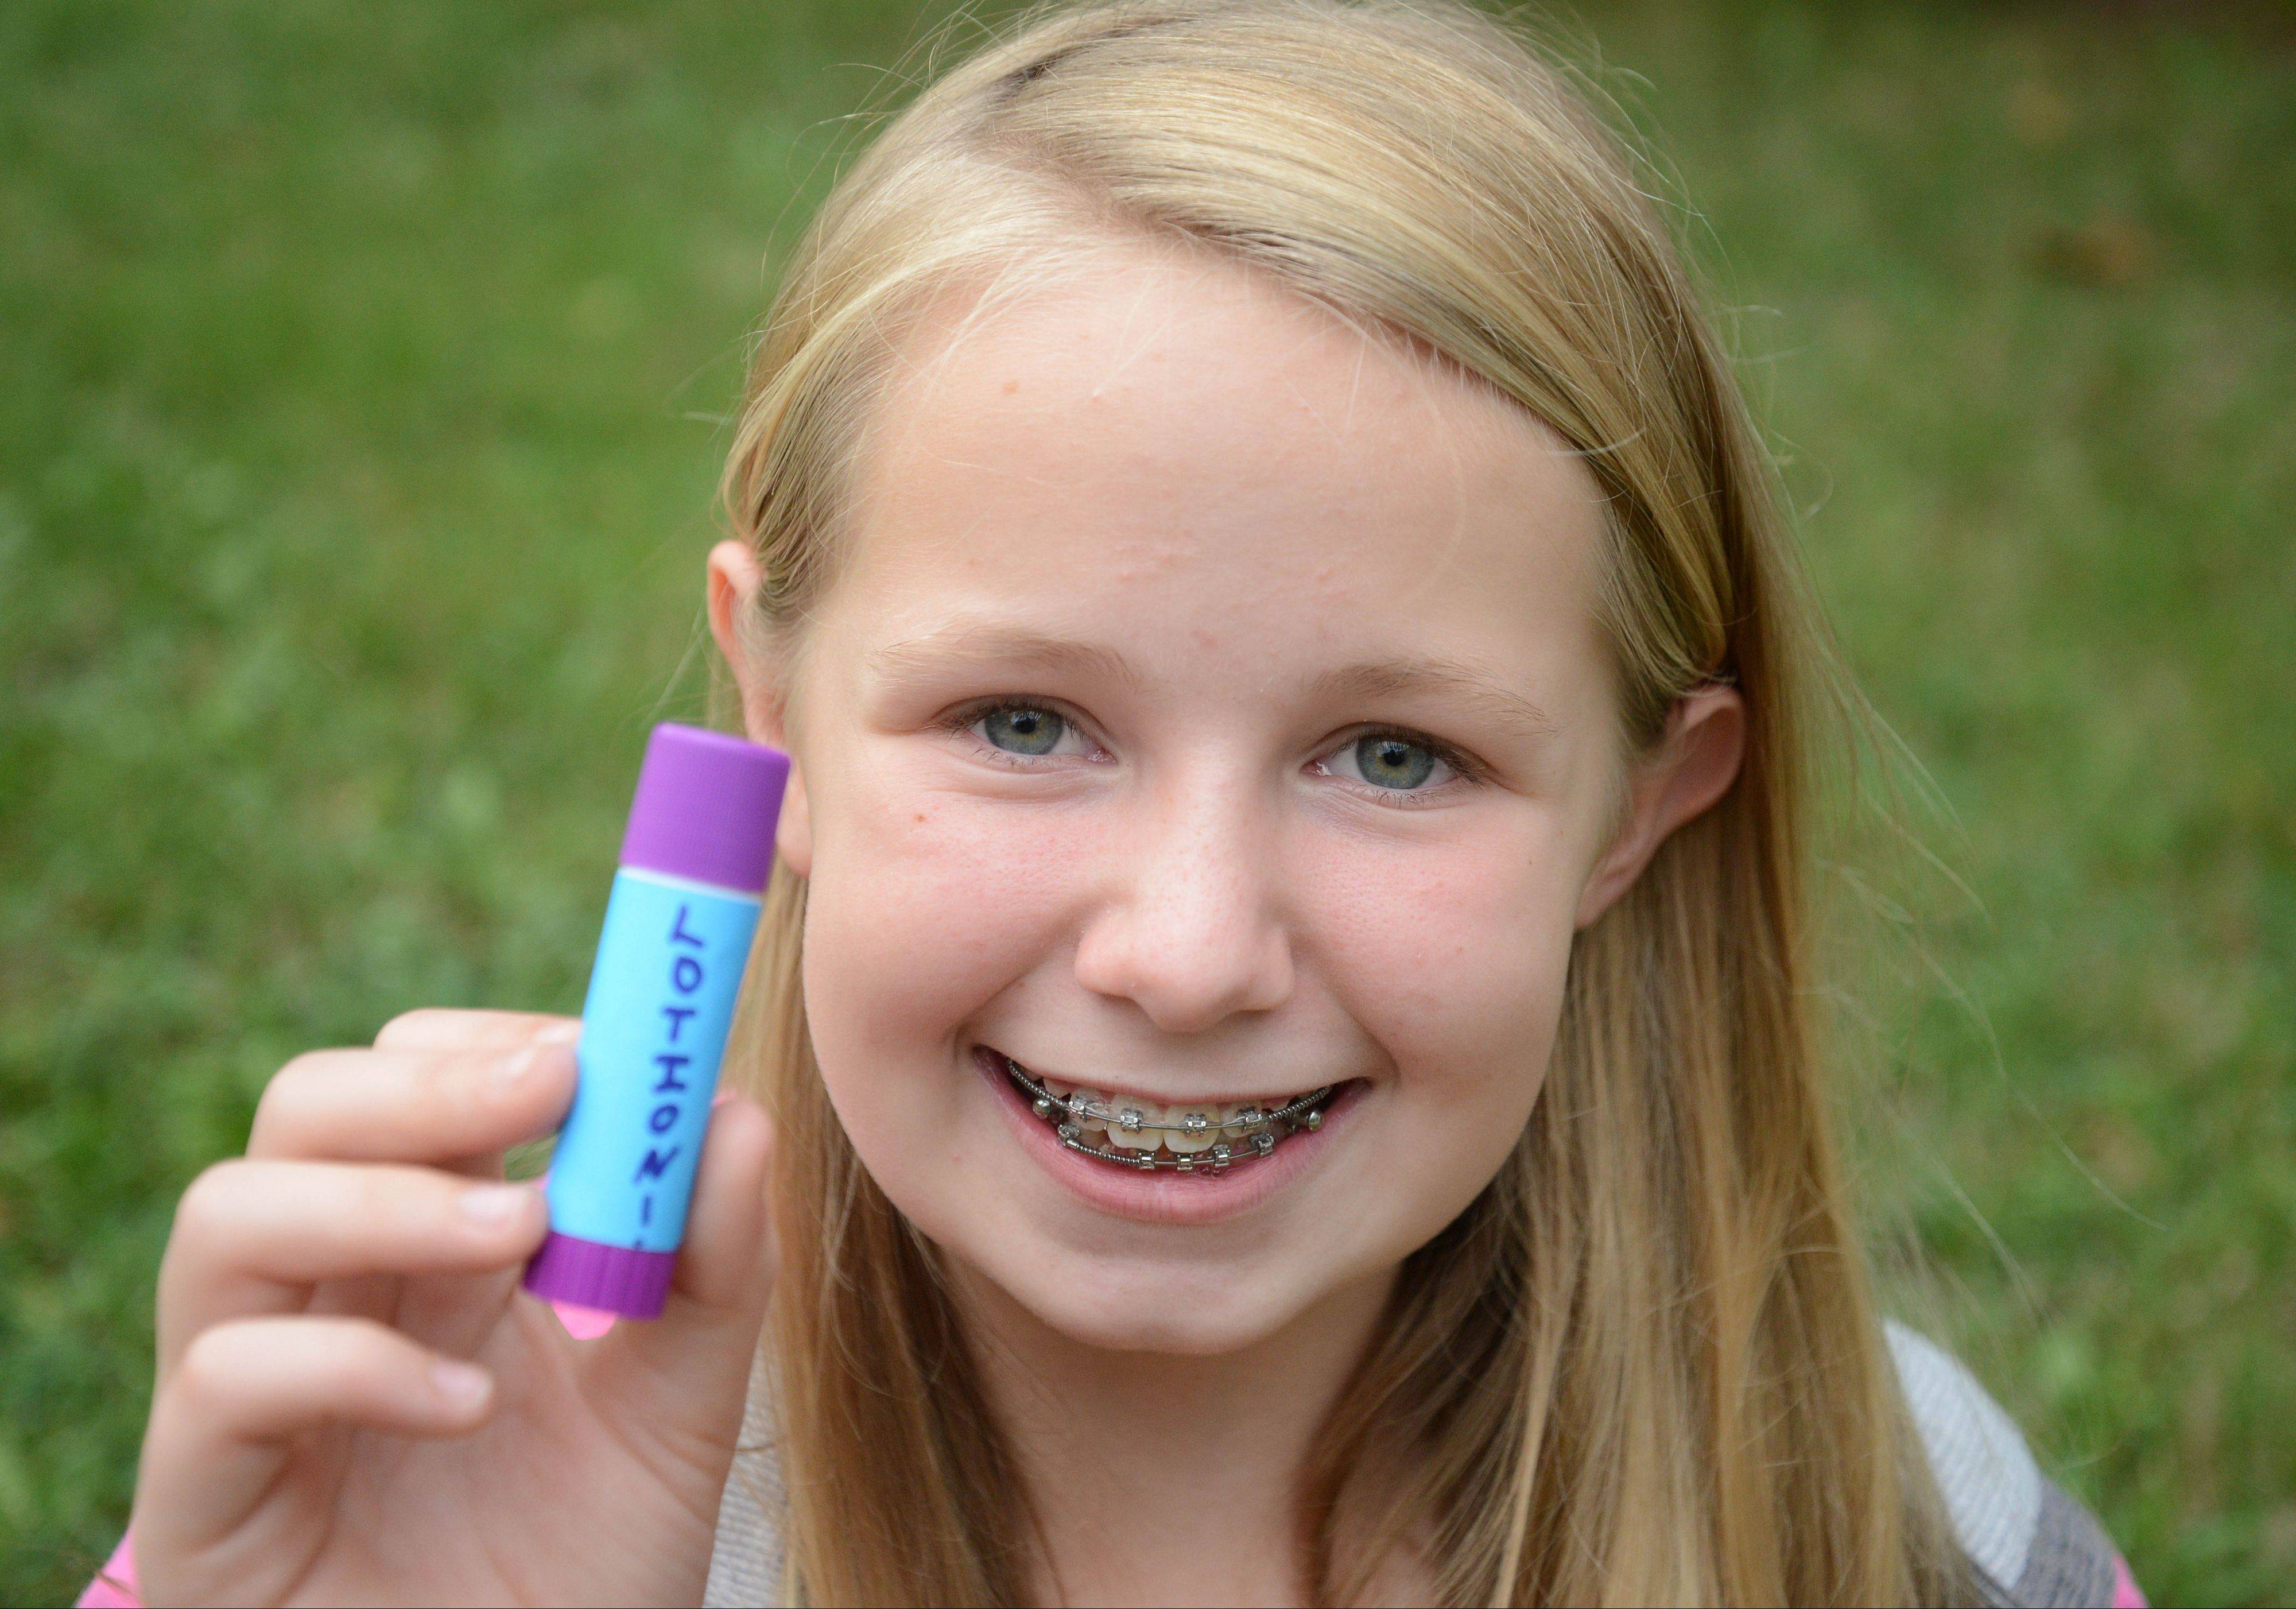 Cat Bradley, a sixth-grader at Jefferson Junior High in Naperville, hopes to develop her idea for a lotion stick into a business as she participates in the Young Entrepreneurs Academy offered for the first time through the Naperville Area Chamber of Commerce.